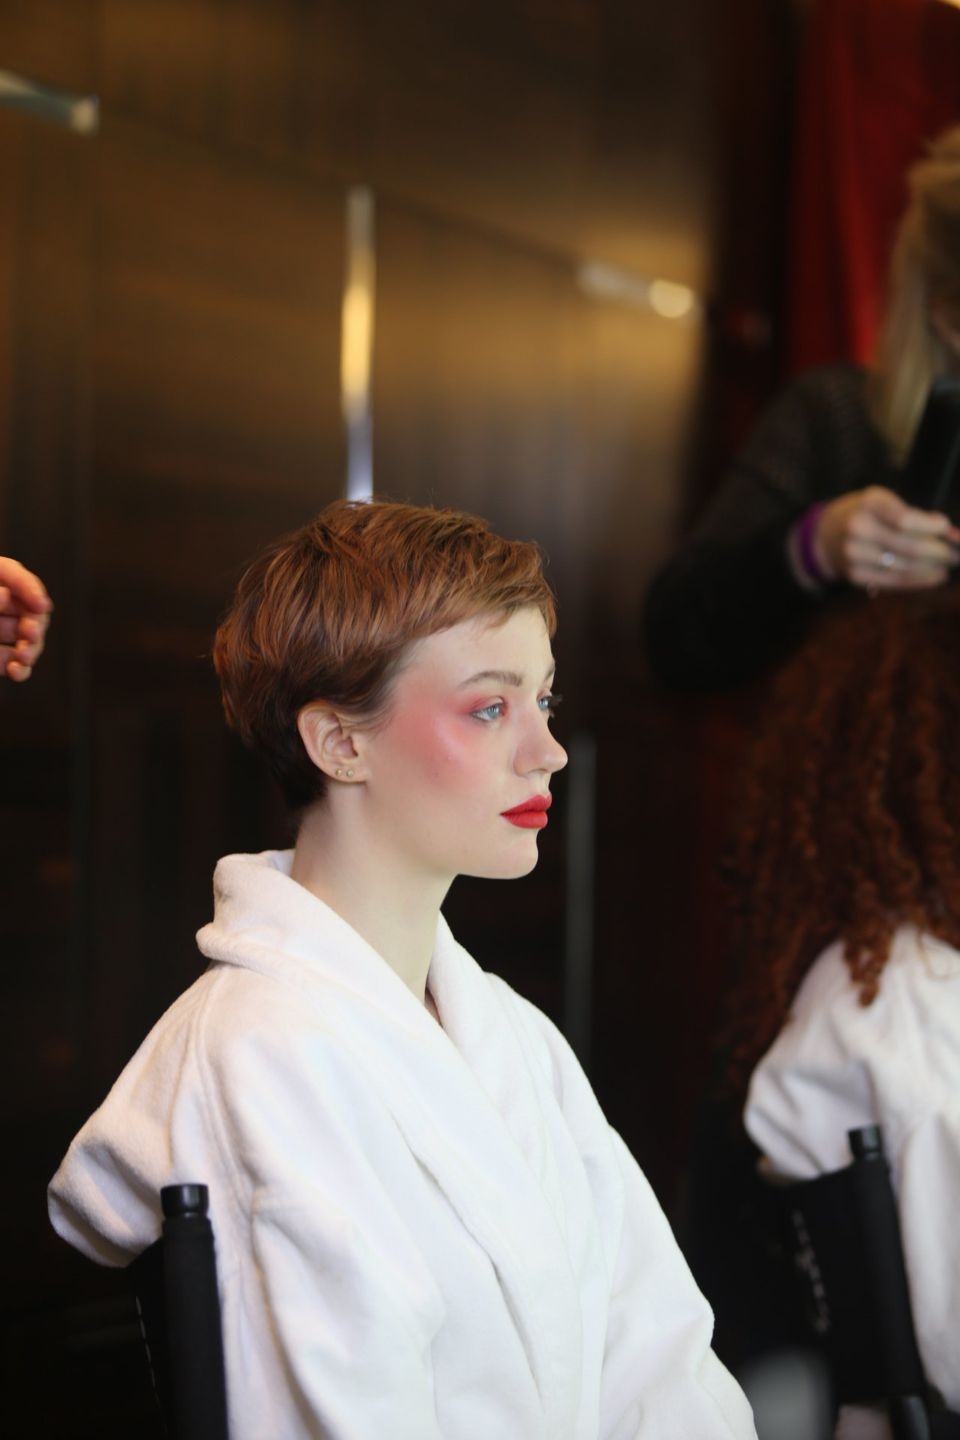 Backstage beauty at London Fashion Week: Bobbi Brown for Lulu Guinness shows us how to pull off a dewy